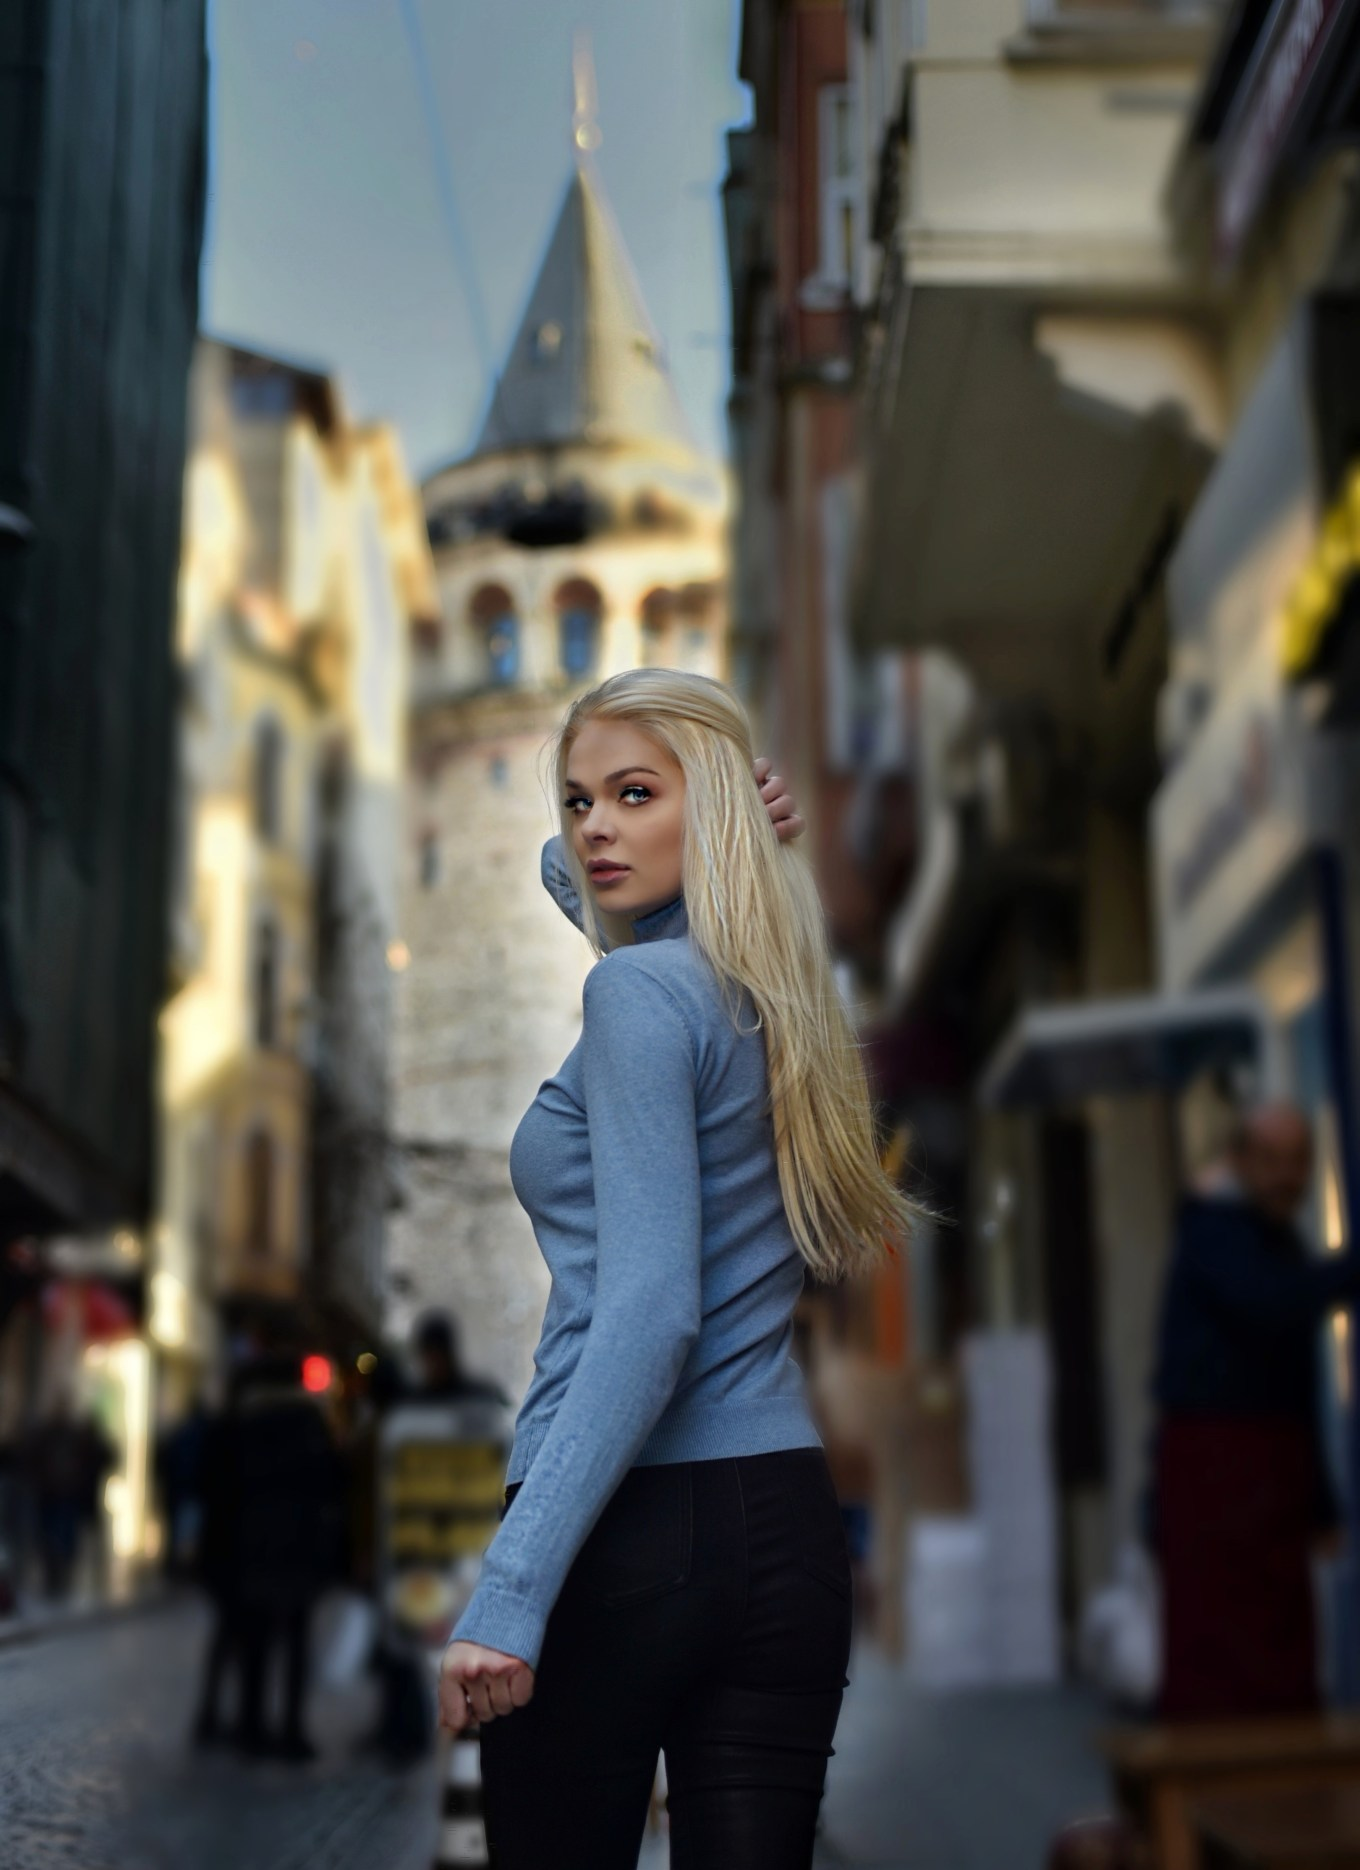 Personal Photo Shooting in Istanbul. Graduation Photo Shooting in Istanbul